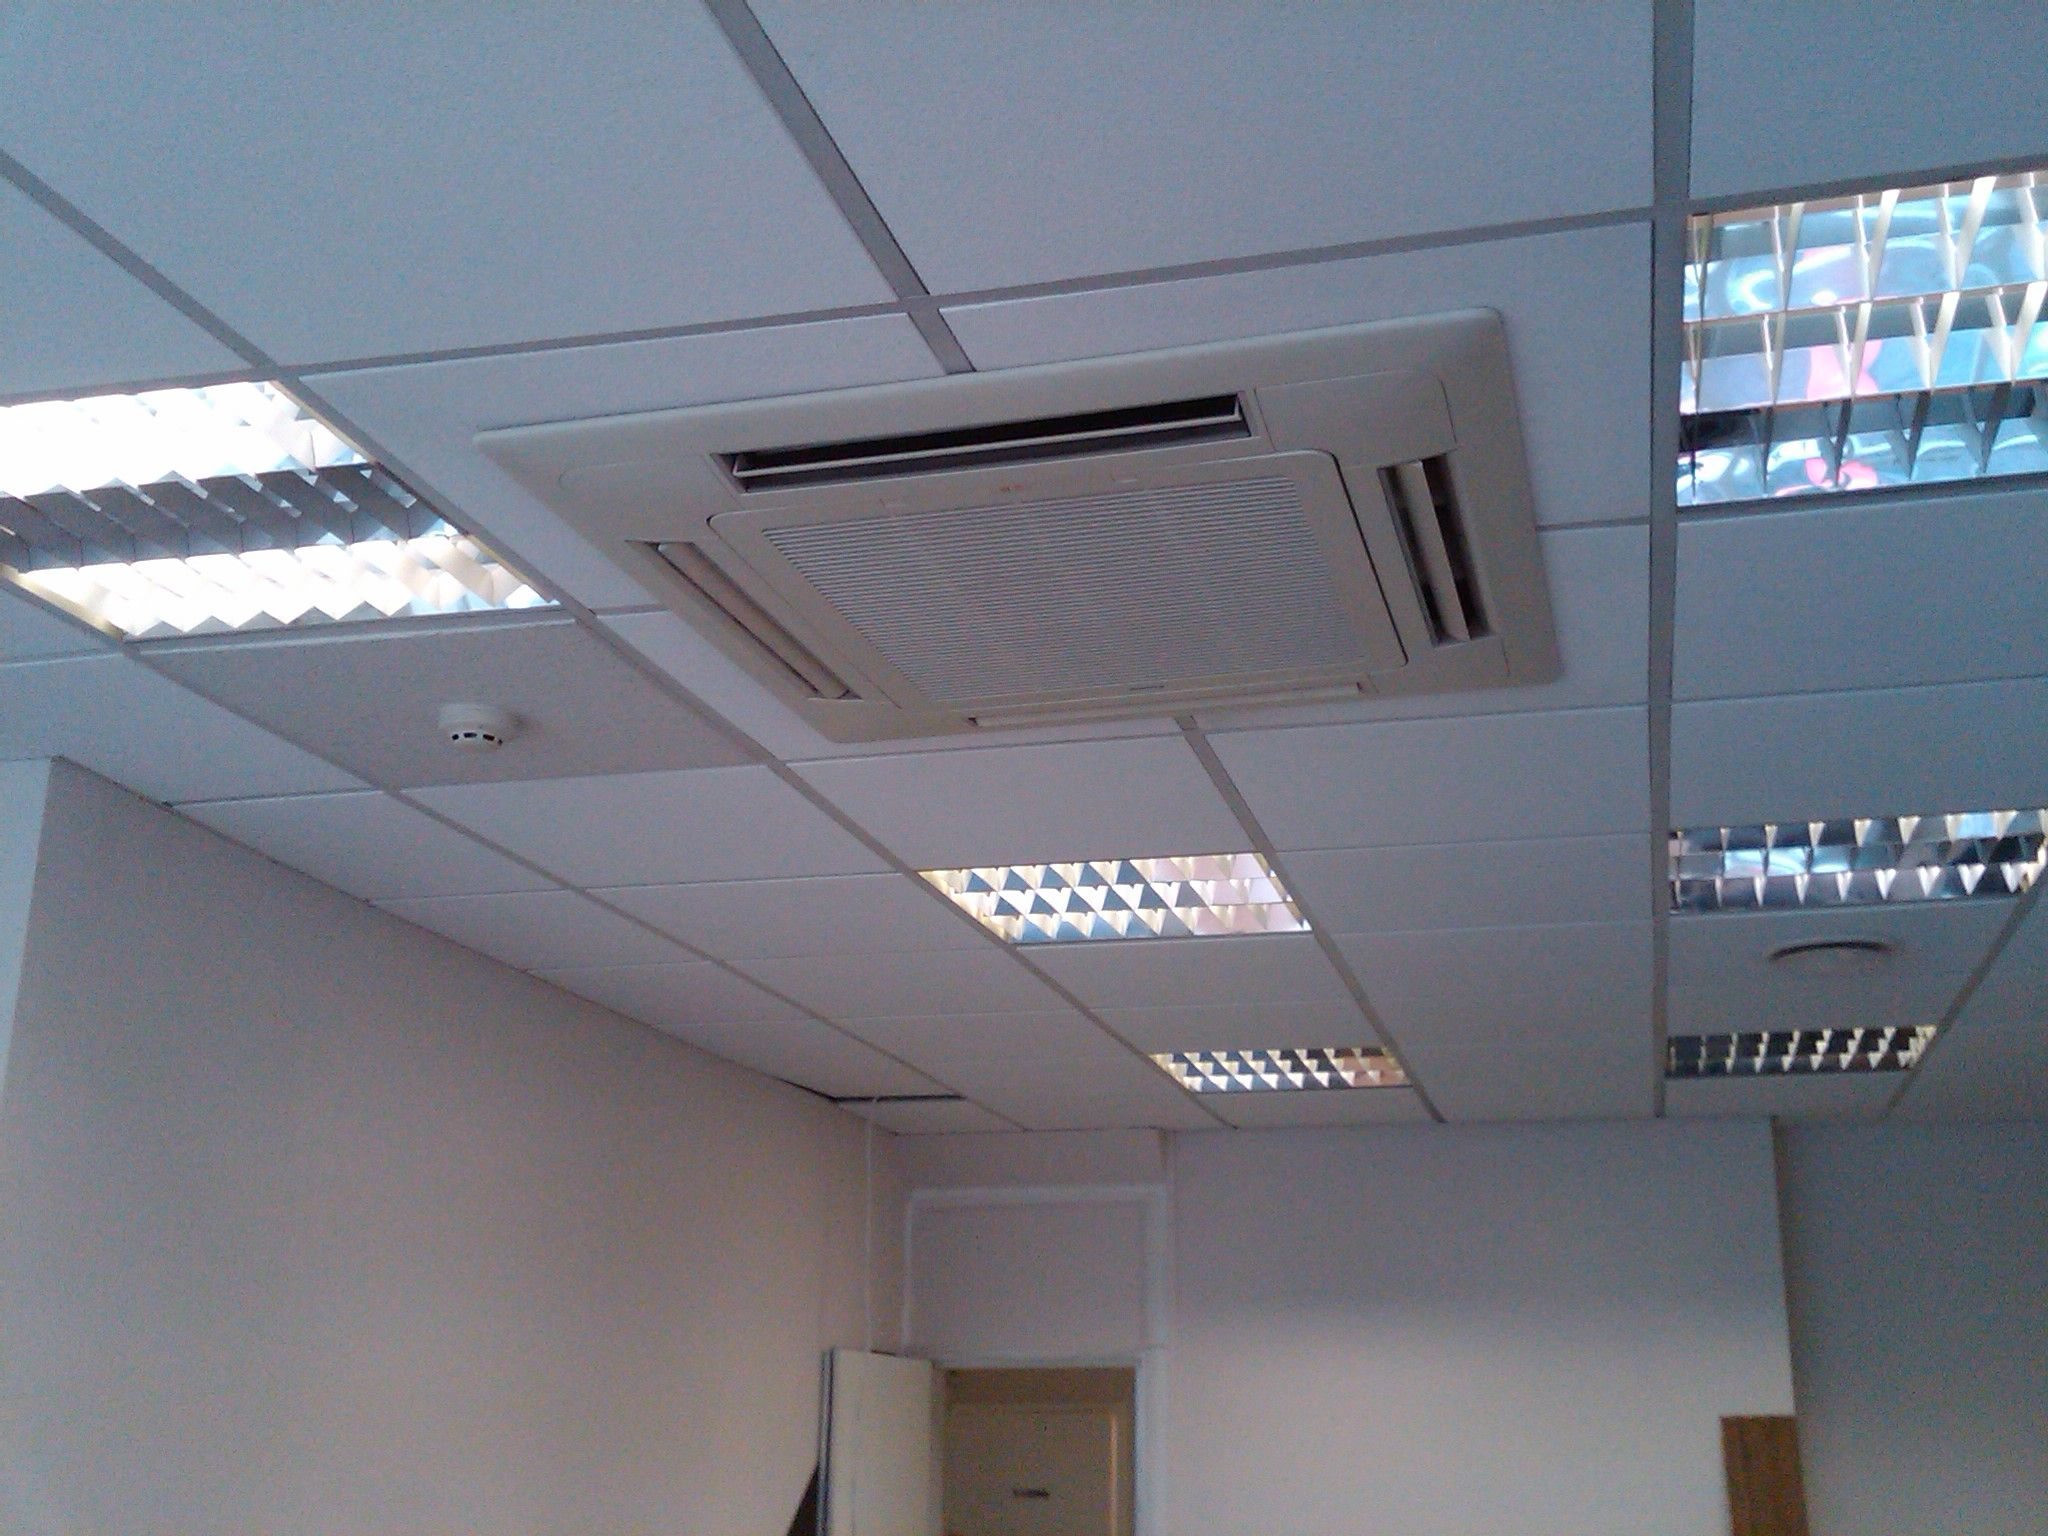 New Ceiling Tiles Installed And Finished To A High Standard Smoke